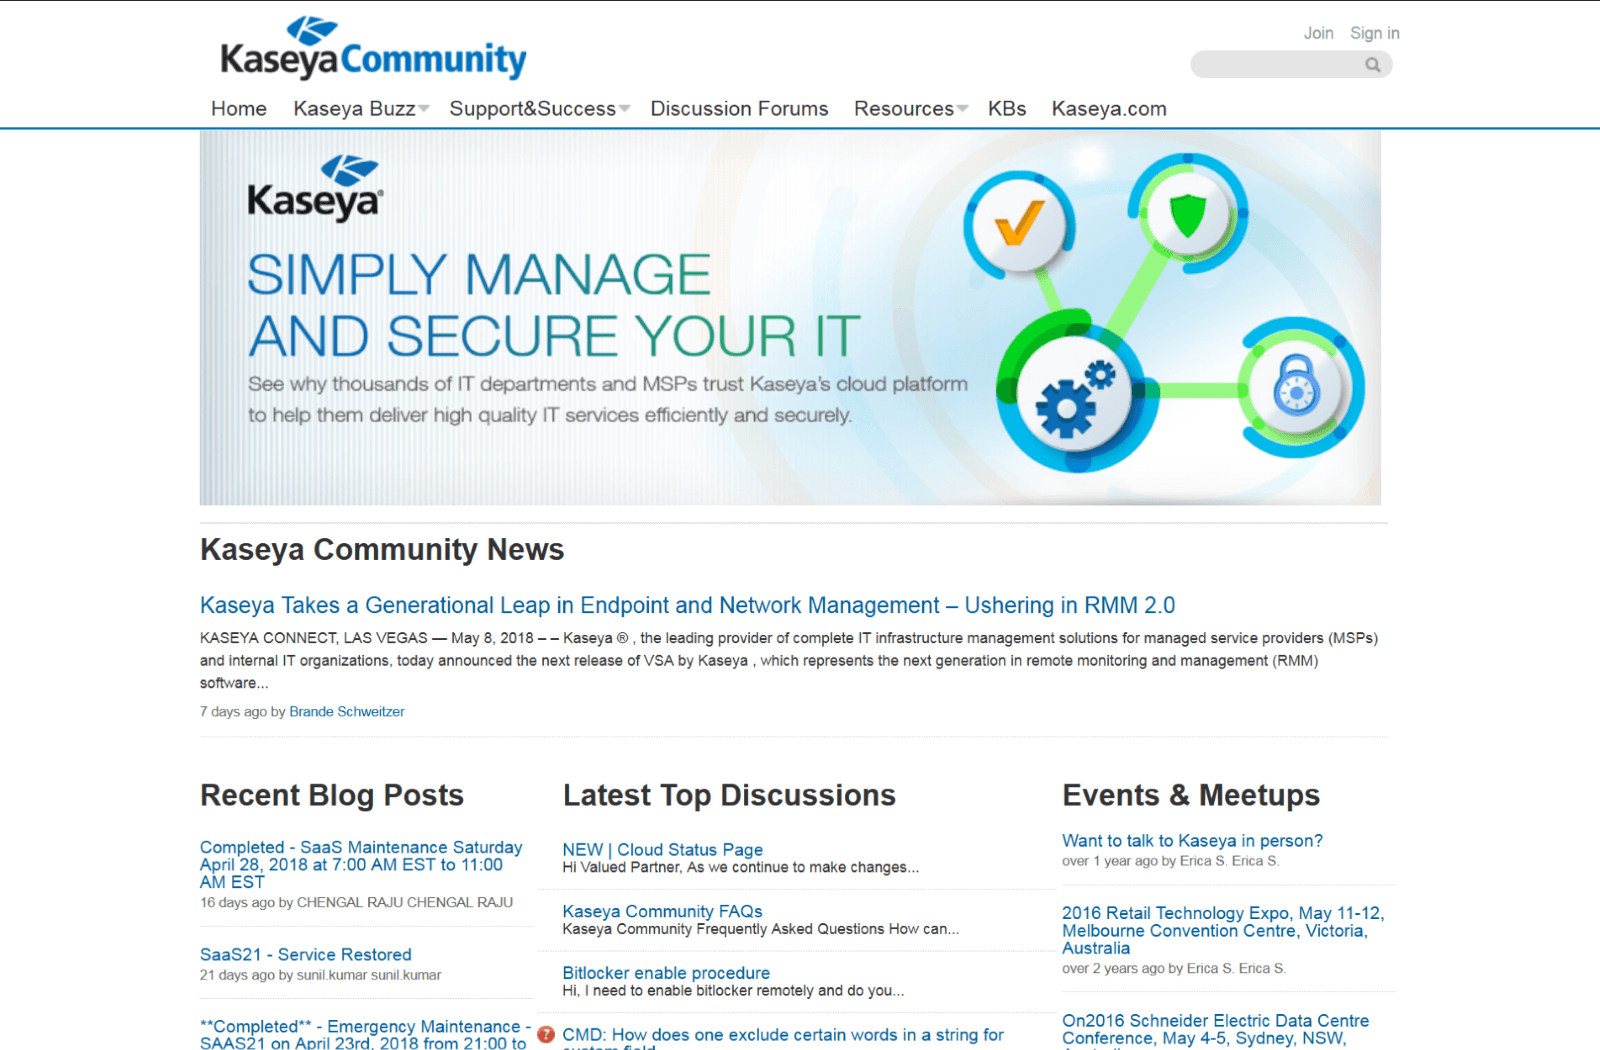 Screenshot of Kaseya Community